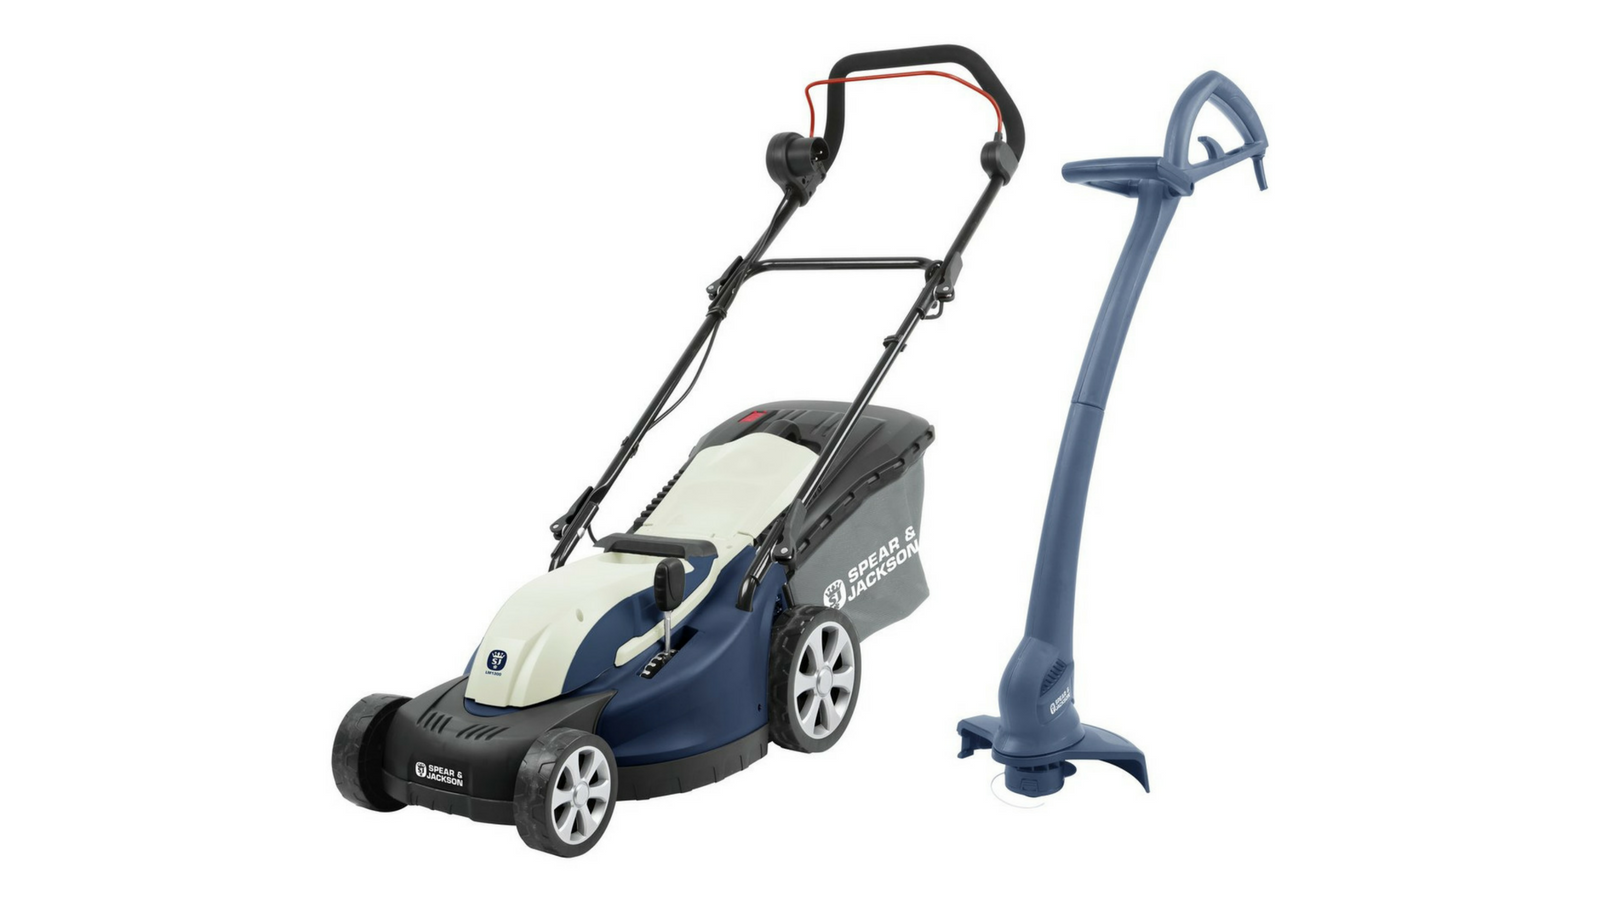 Best Lawn Mower 2018 The Best Electric Cordless Petrol